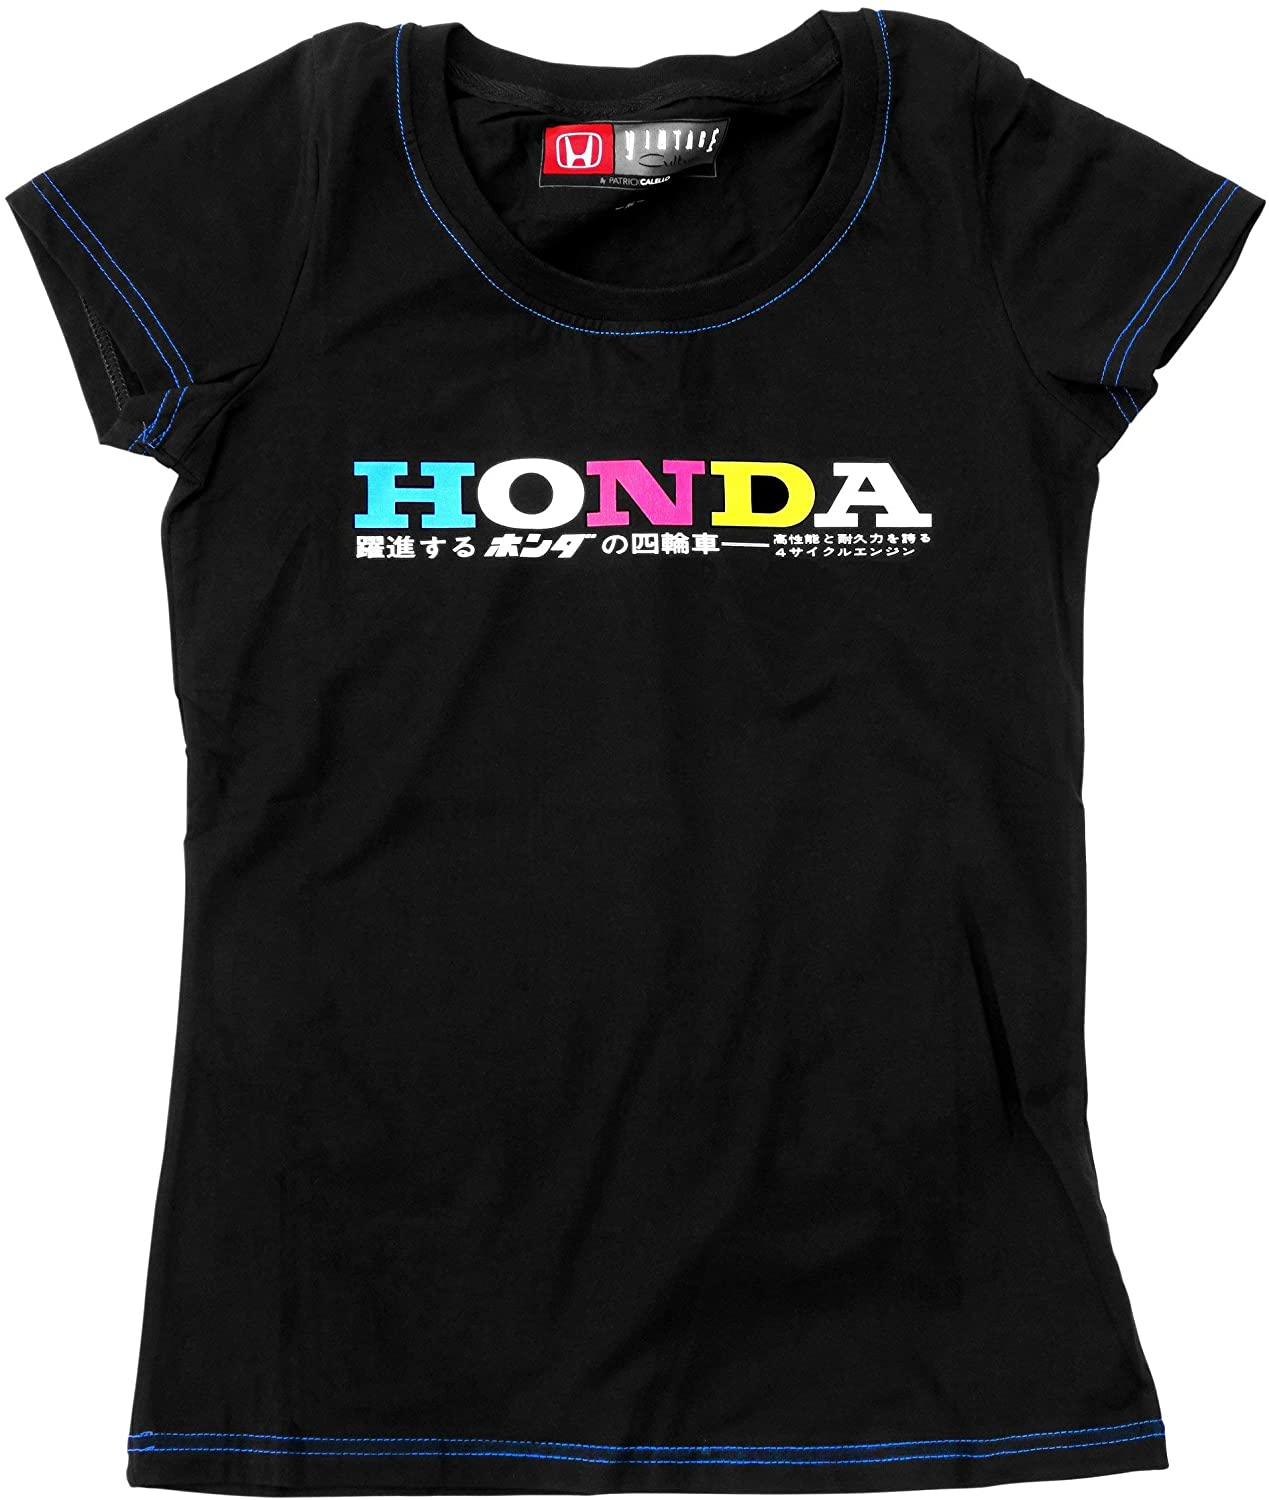 Vintage Culture Officially Licensed Honda Motors Brand Tee Shirt Womens Black